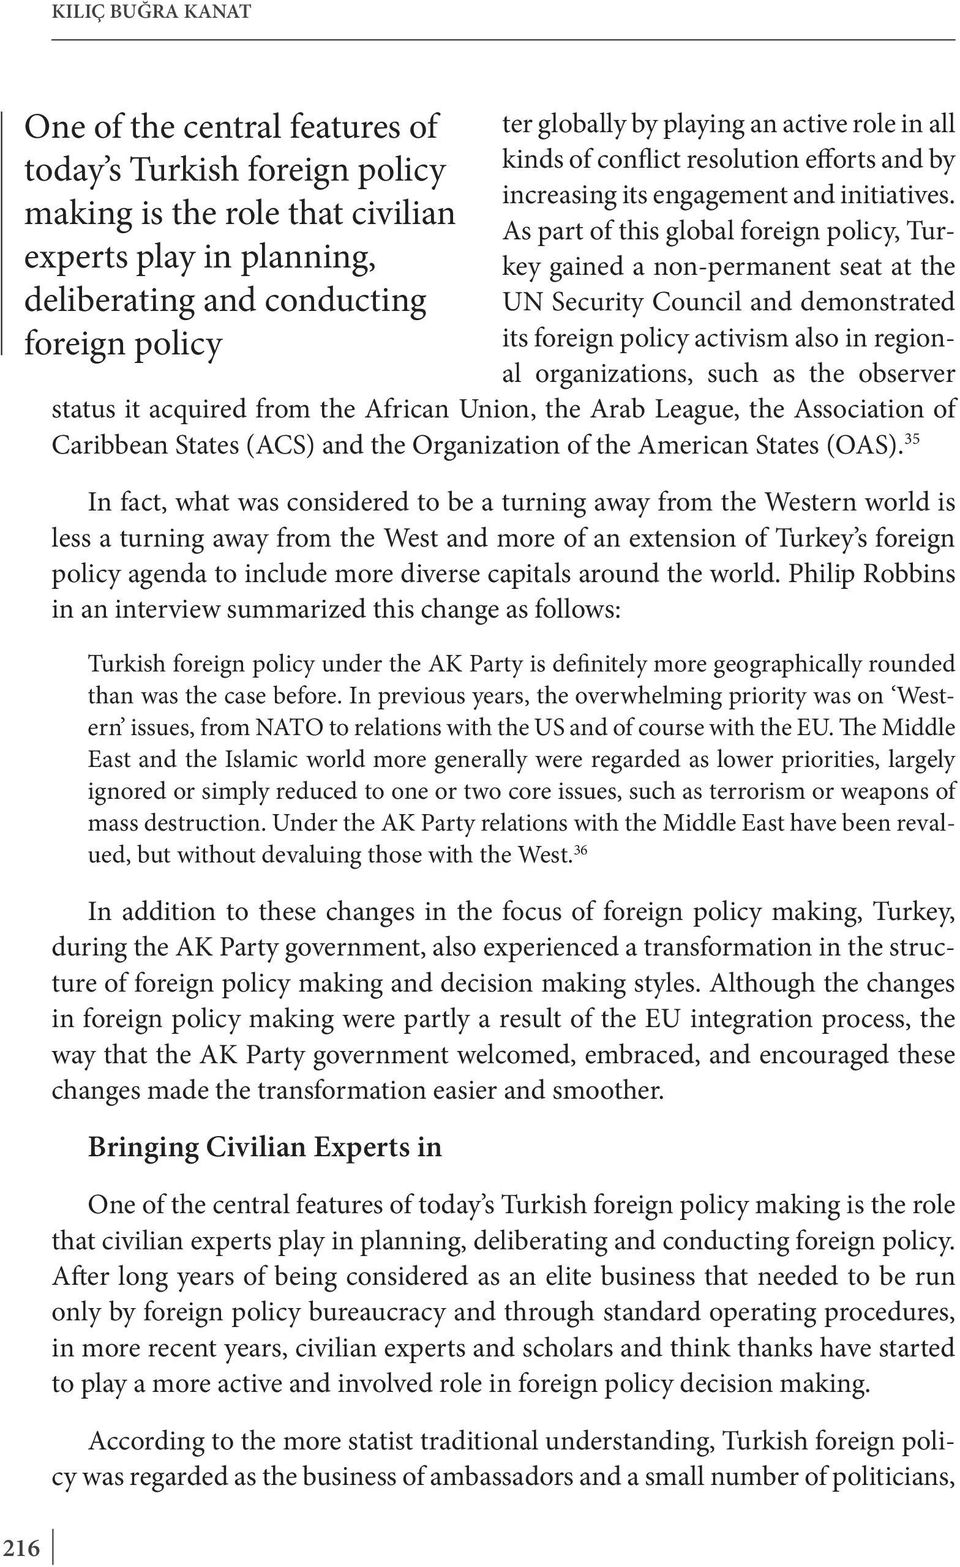 As part of this global foreign policy, Turkey gained a non-permanent seat at the UN Security Council and demonstrated its foreign policy activism also in regional organizations, such as the observer